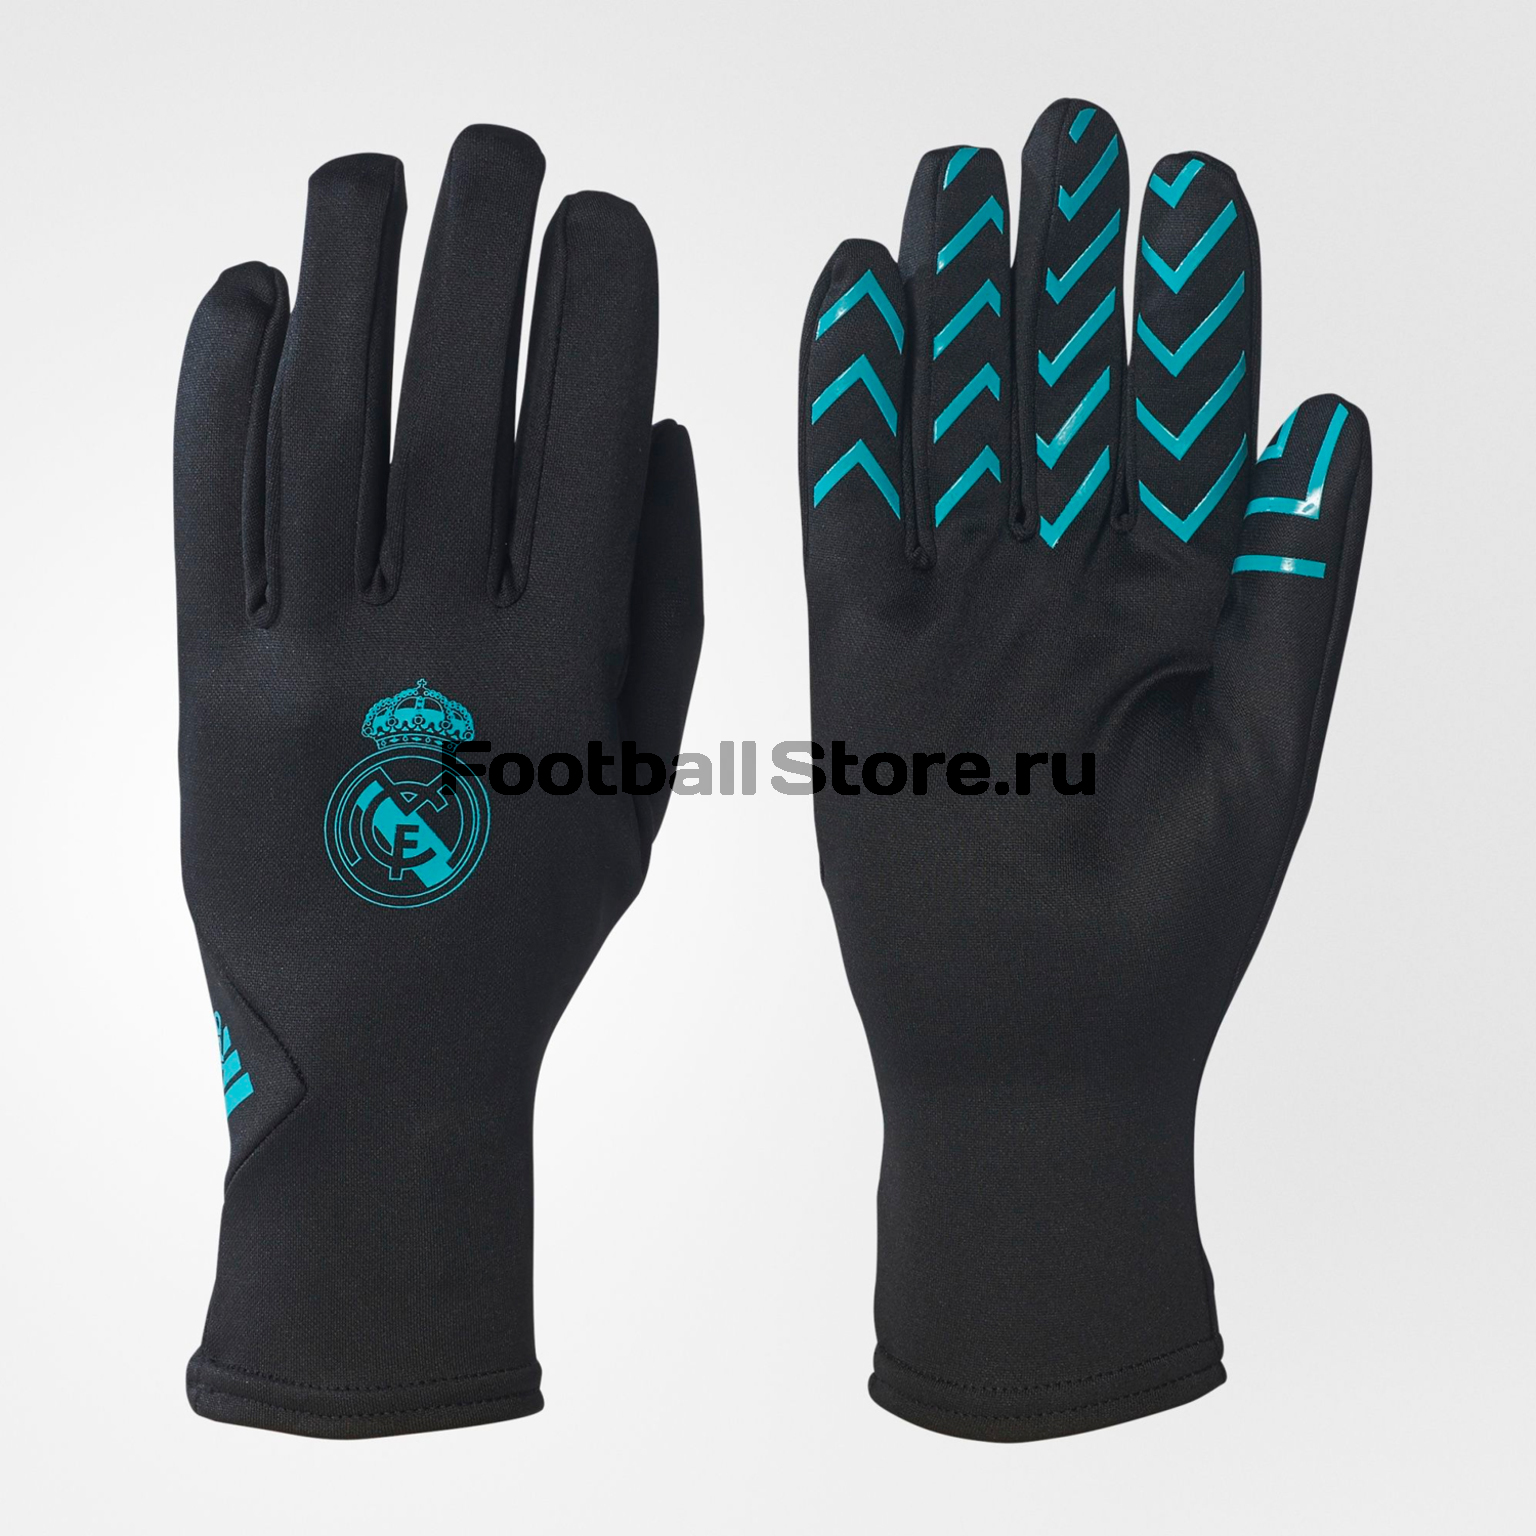 Real Madrid Adidas Перчатки тренировочные Adidas Real Madrid Fieldplayer BR7152